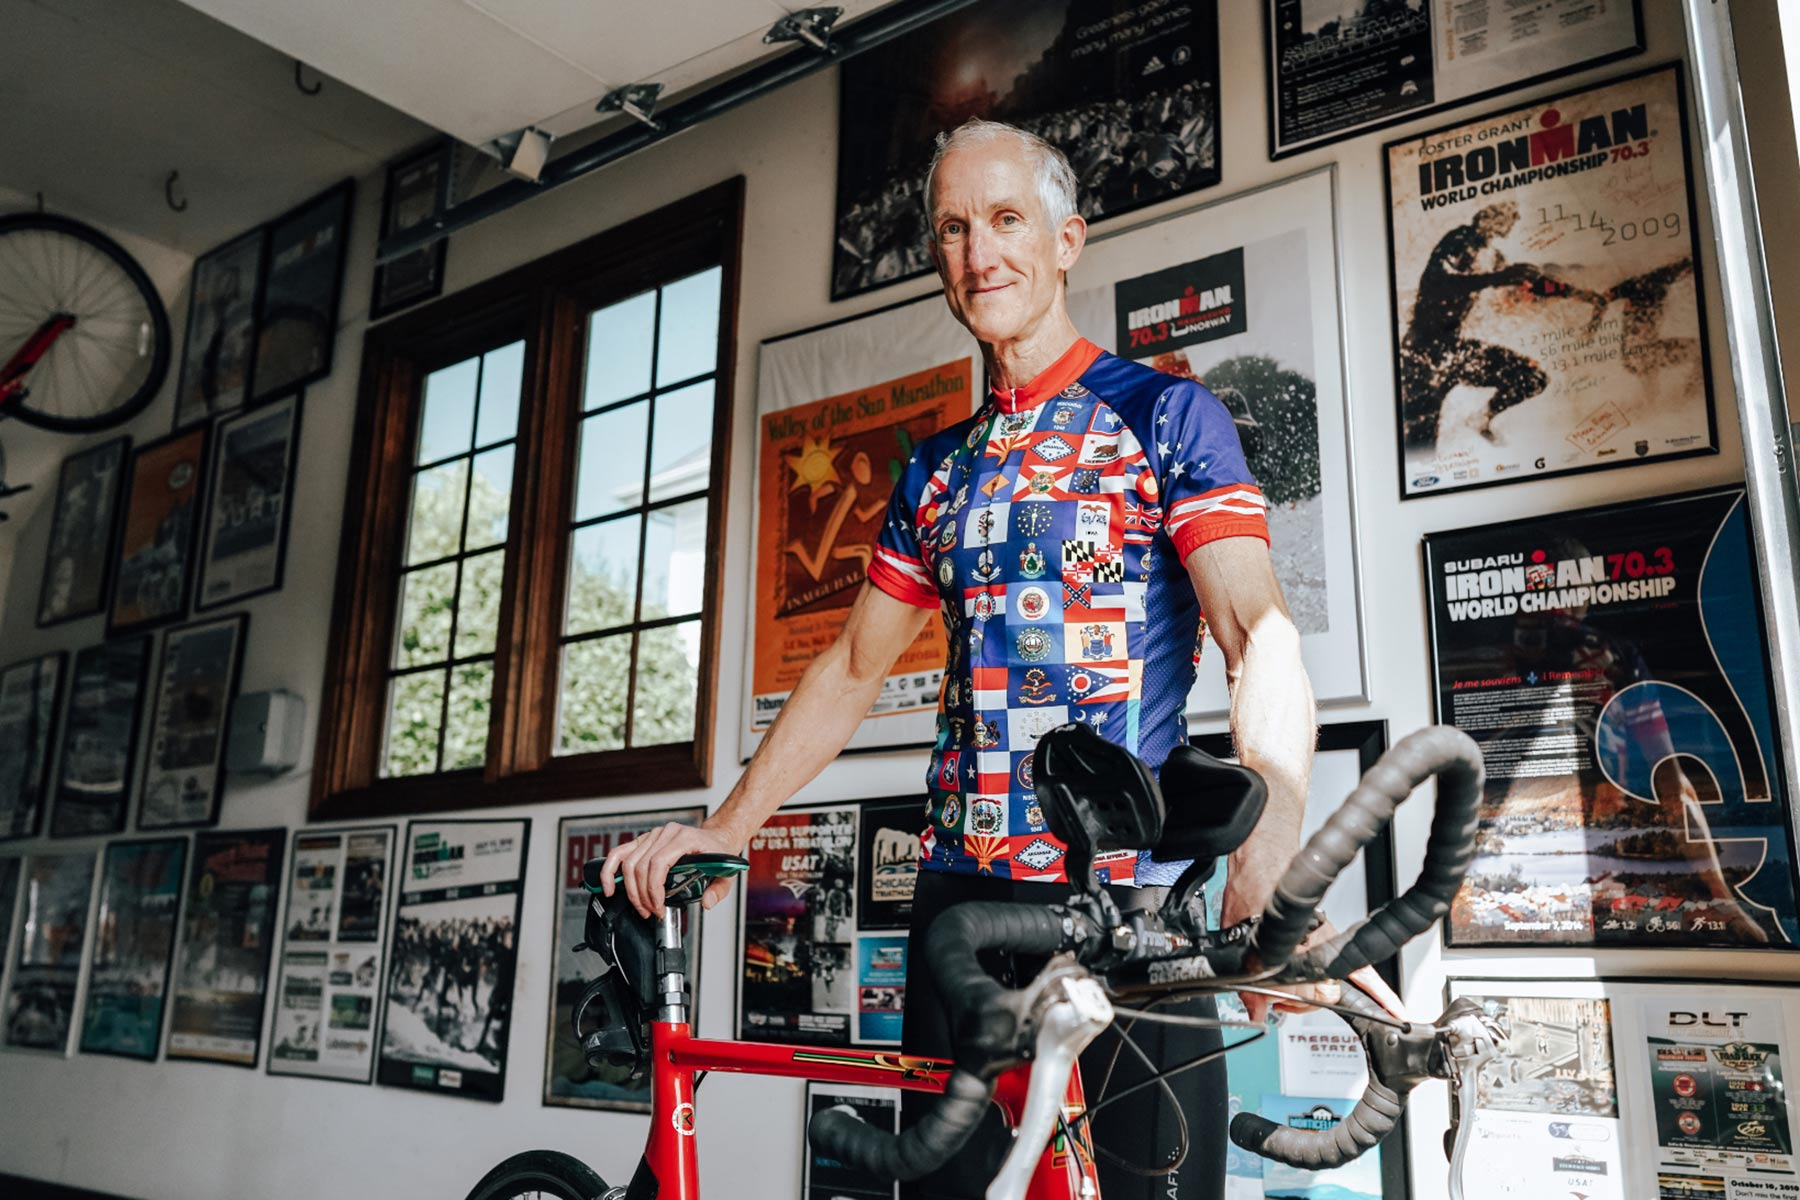 Doug Morris, a tall, wiry, older white man wearing a cycling jersey covered with international flags, stands behind a bike in his home. The wall behind him is covered in triathlon posters.